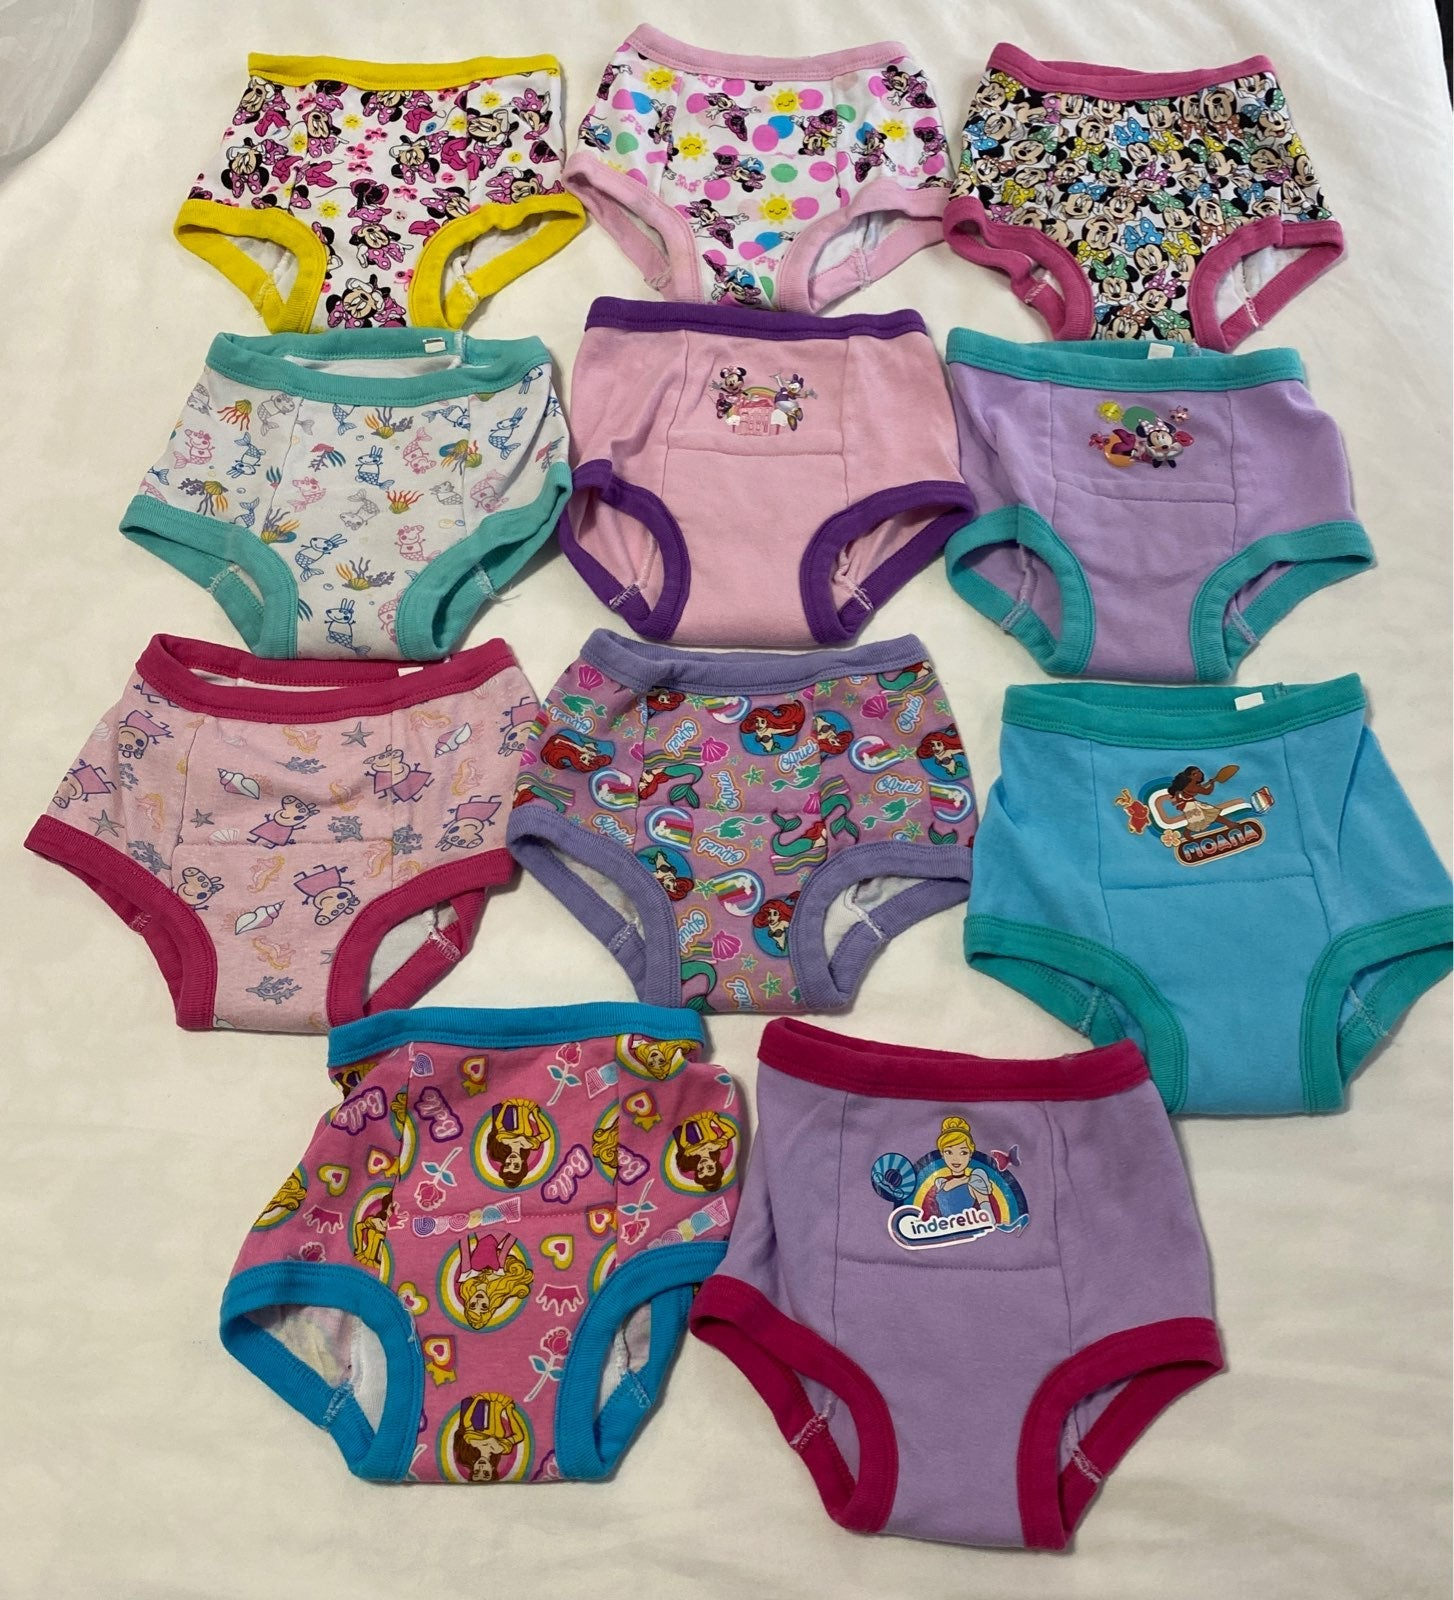 Training Underwear bundle, size 3t